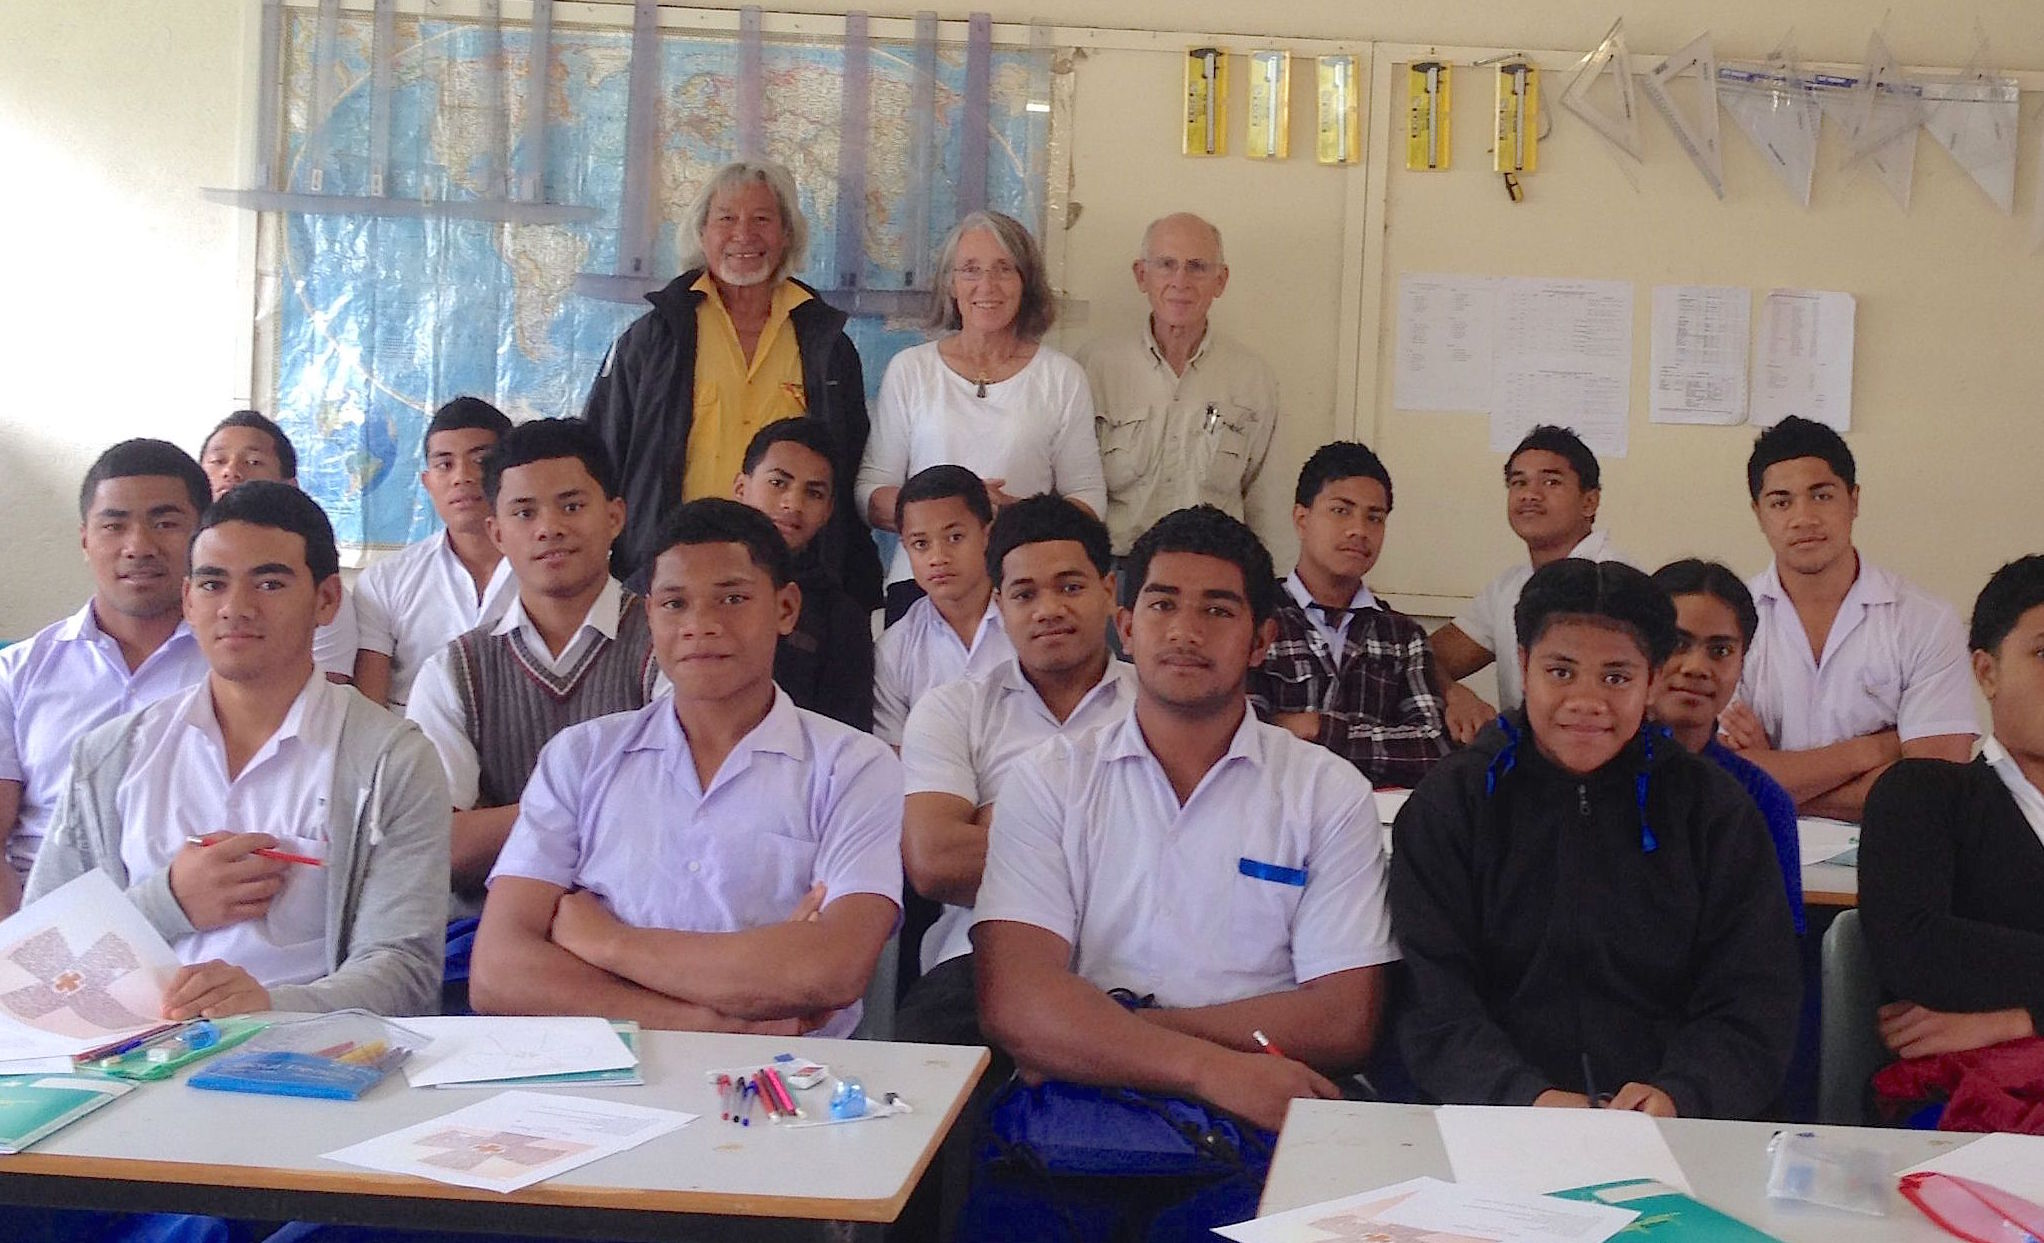 151. 17 and 18 year old students at the Weslian High School with Anne, Jeff, and their Samoan friend, Mailagi